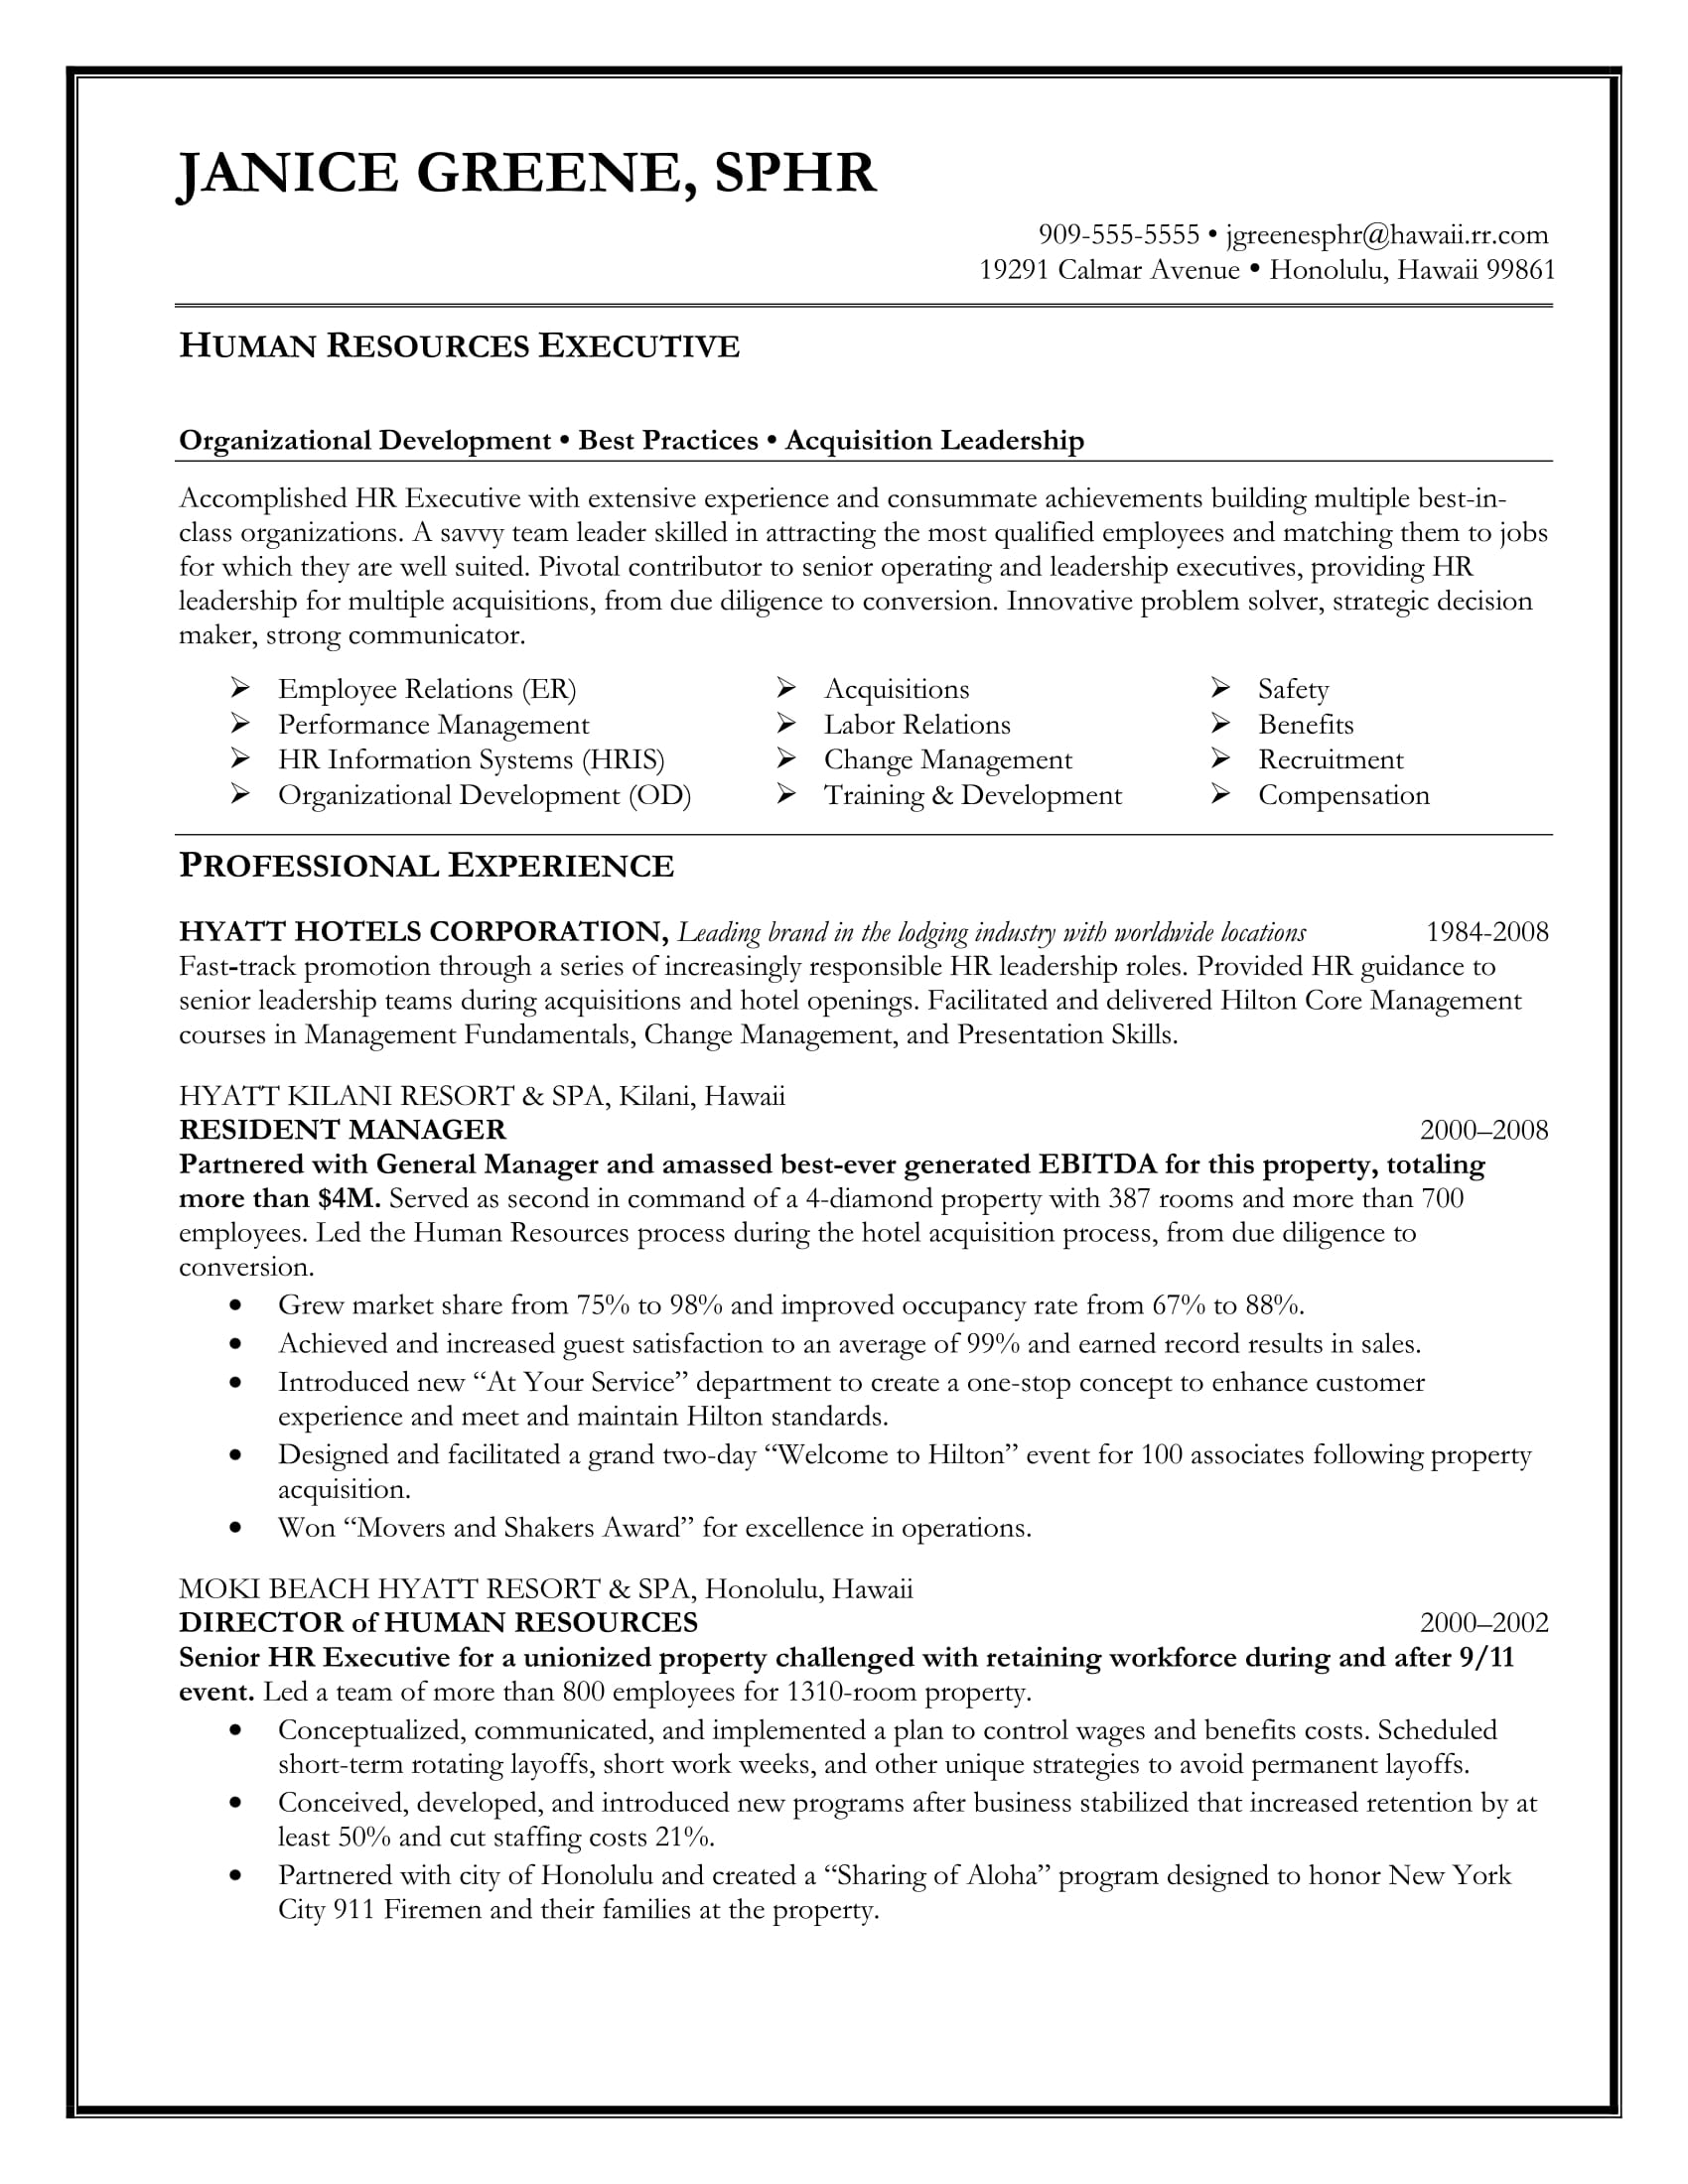 Best Sample Executive Resume Templates WiseStep - Management resume templates free